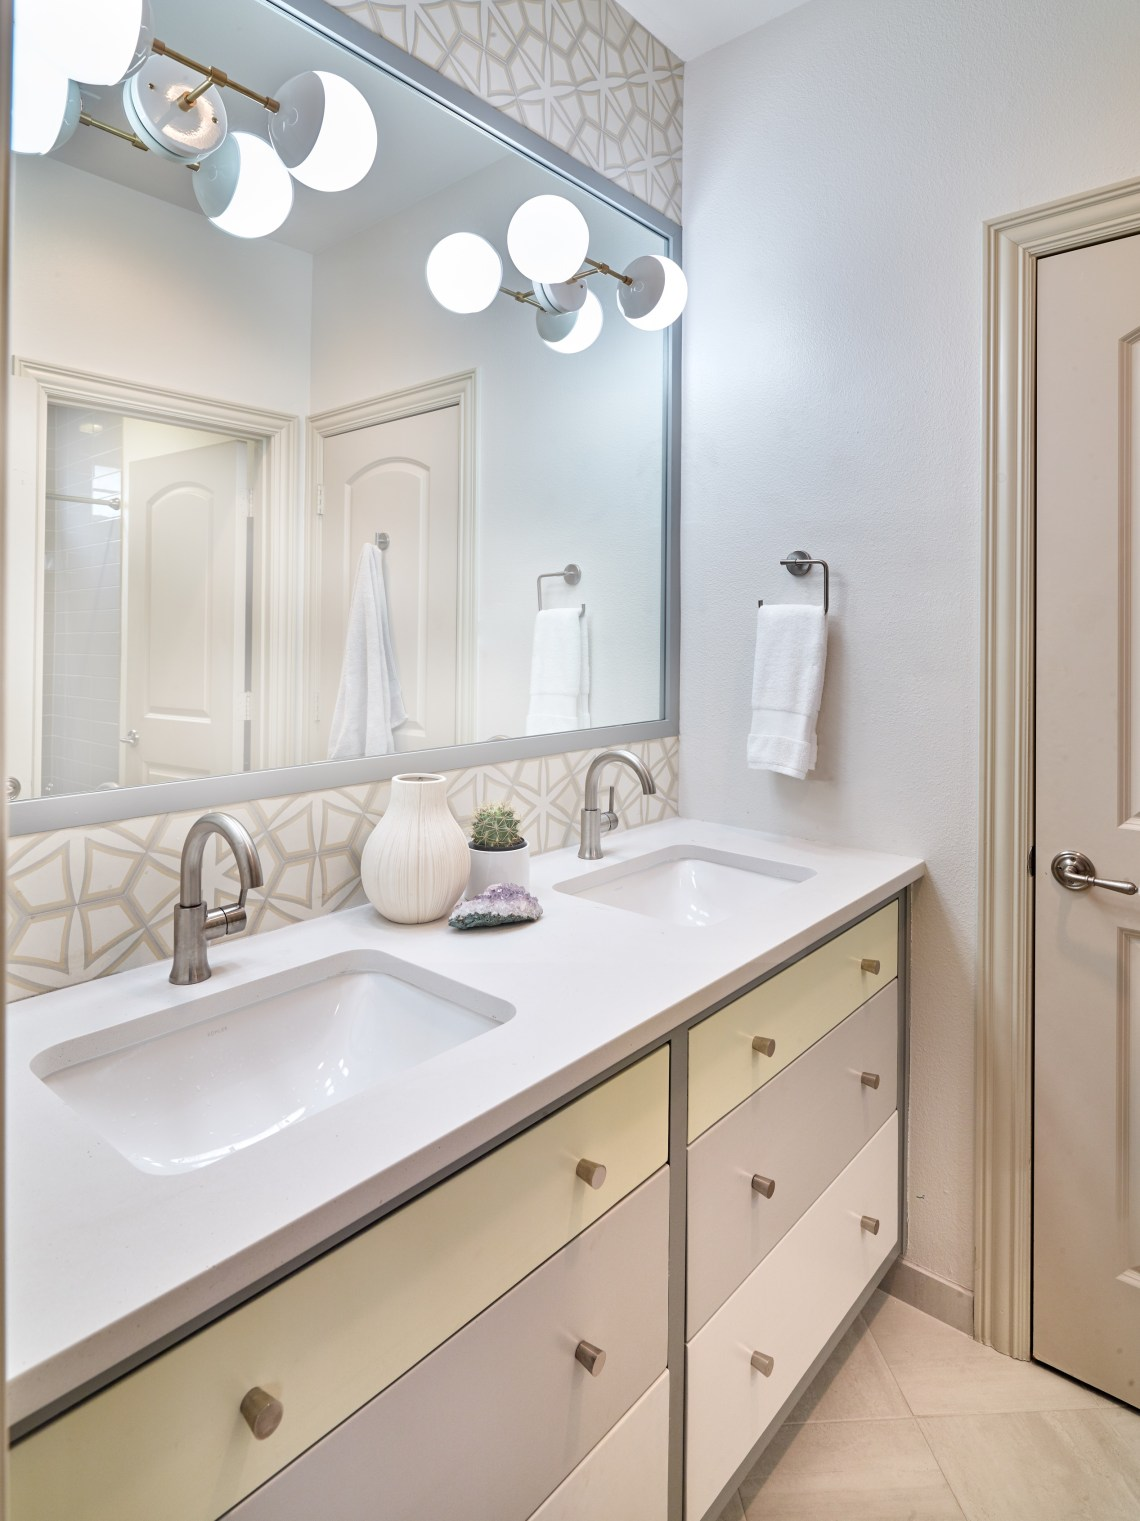 Kids bathroom with colorful painted cabinetry and cement tile backsplash with Cedar & Moss lighting